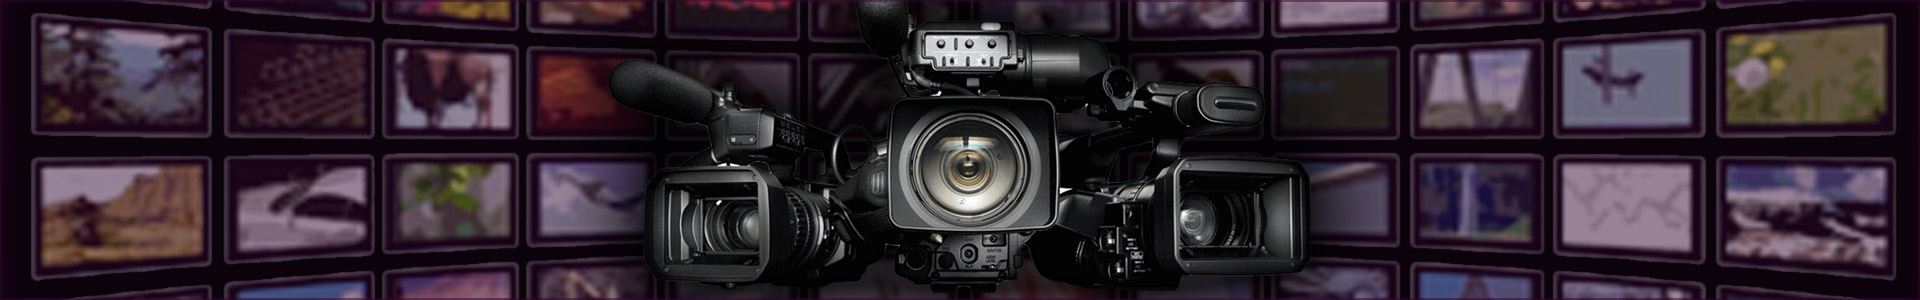 KESHANDE Technology Live Streaming | Live Webcasting | On-Demand Video Streaming